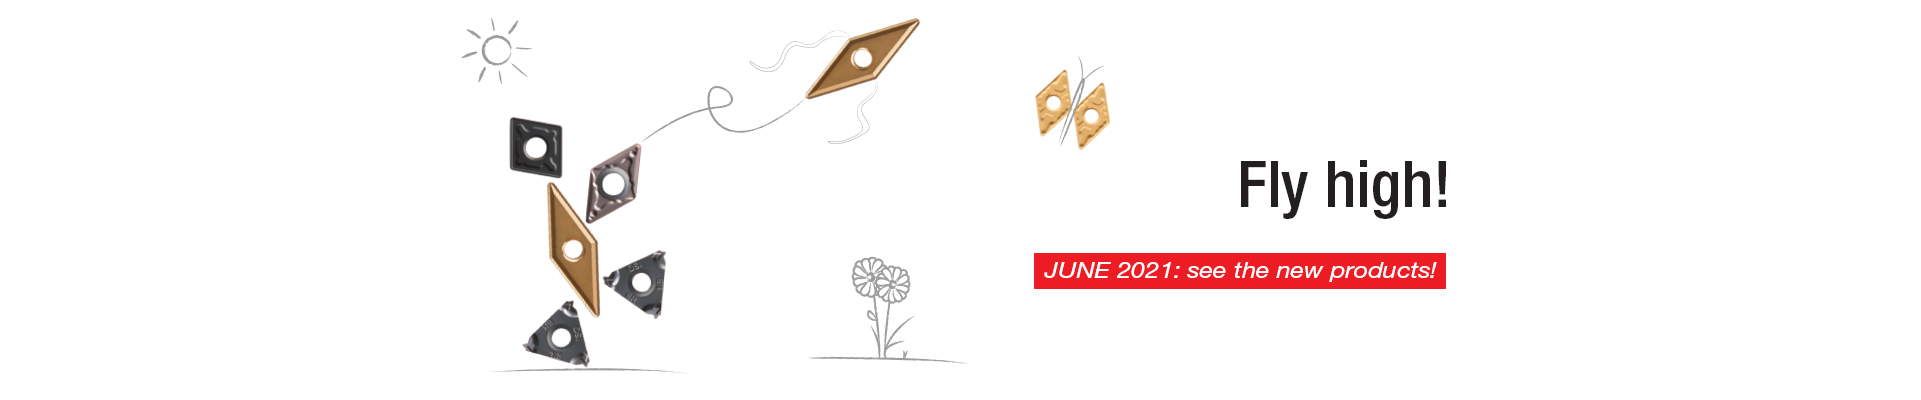 New products June 2021